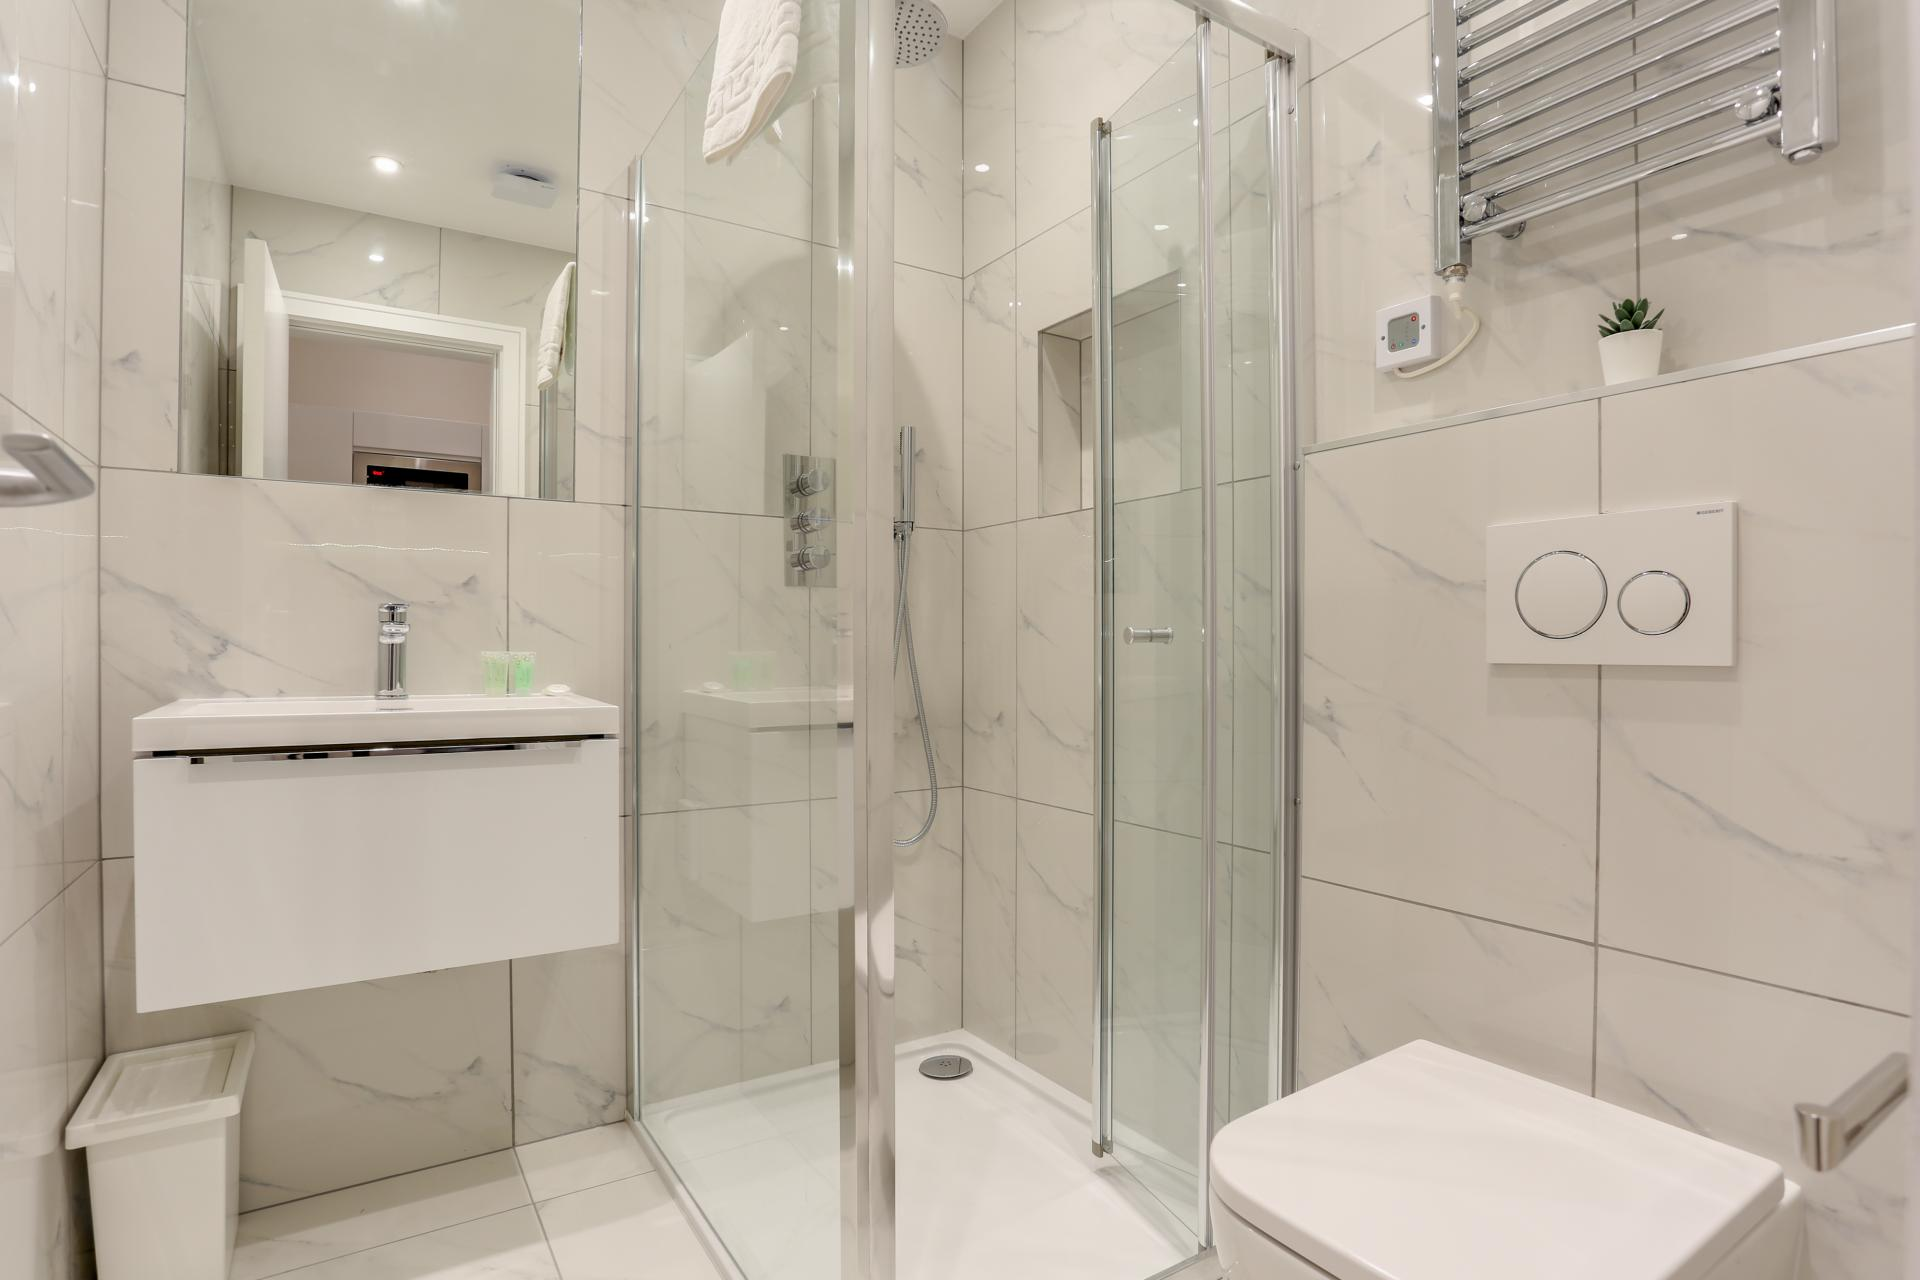 Bathroom at Queensborough Terrace, Bayswater, London - Citybase Apartments